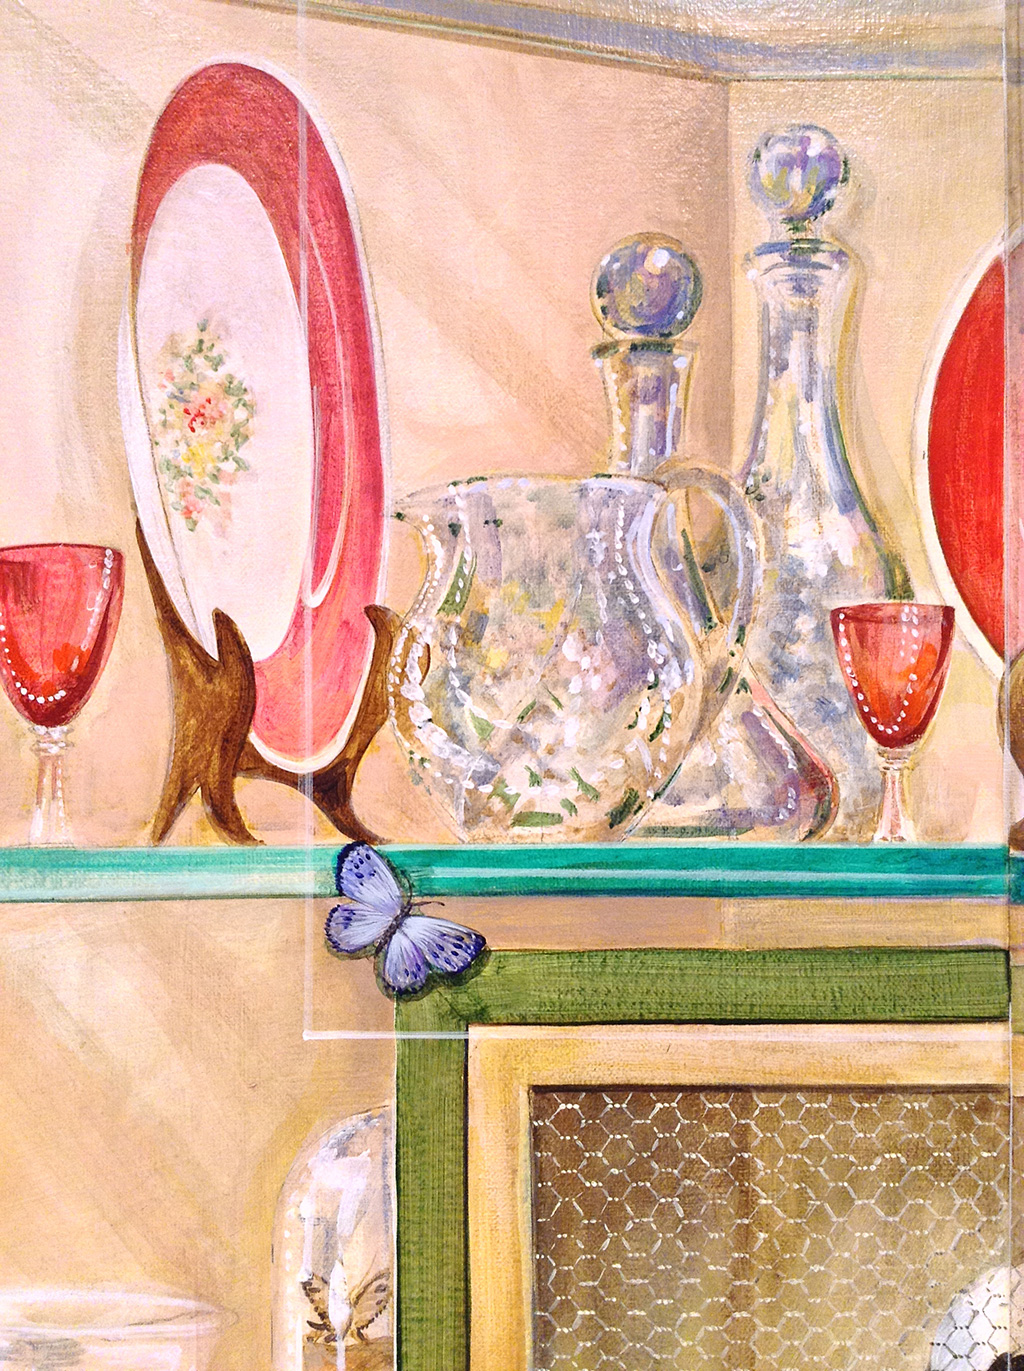 Trompe l'oeil glass display cabinet mural detail